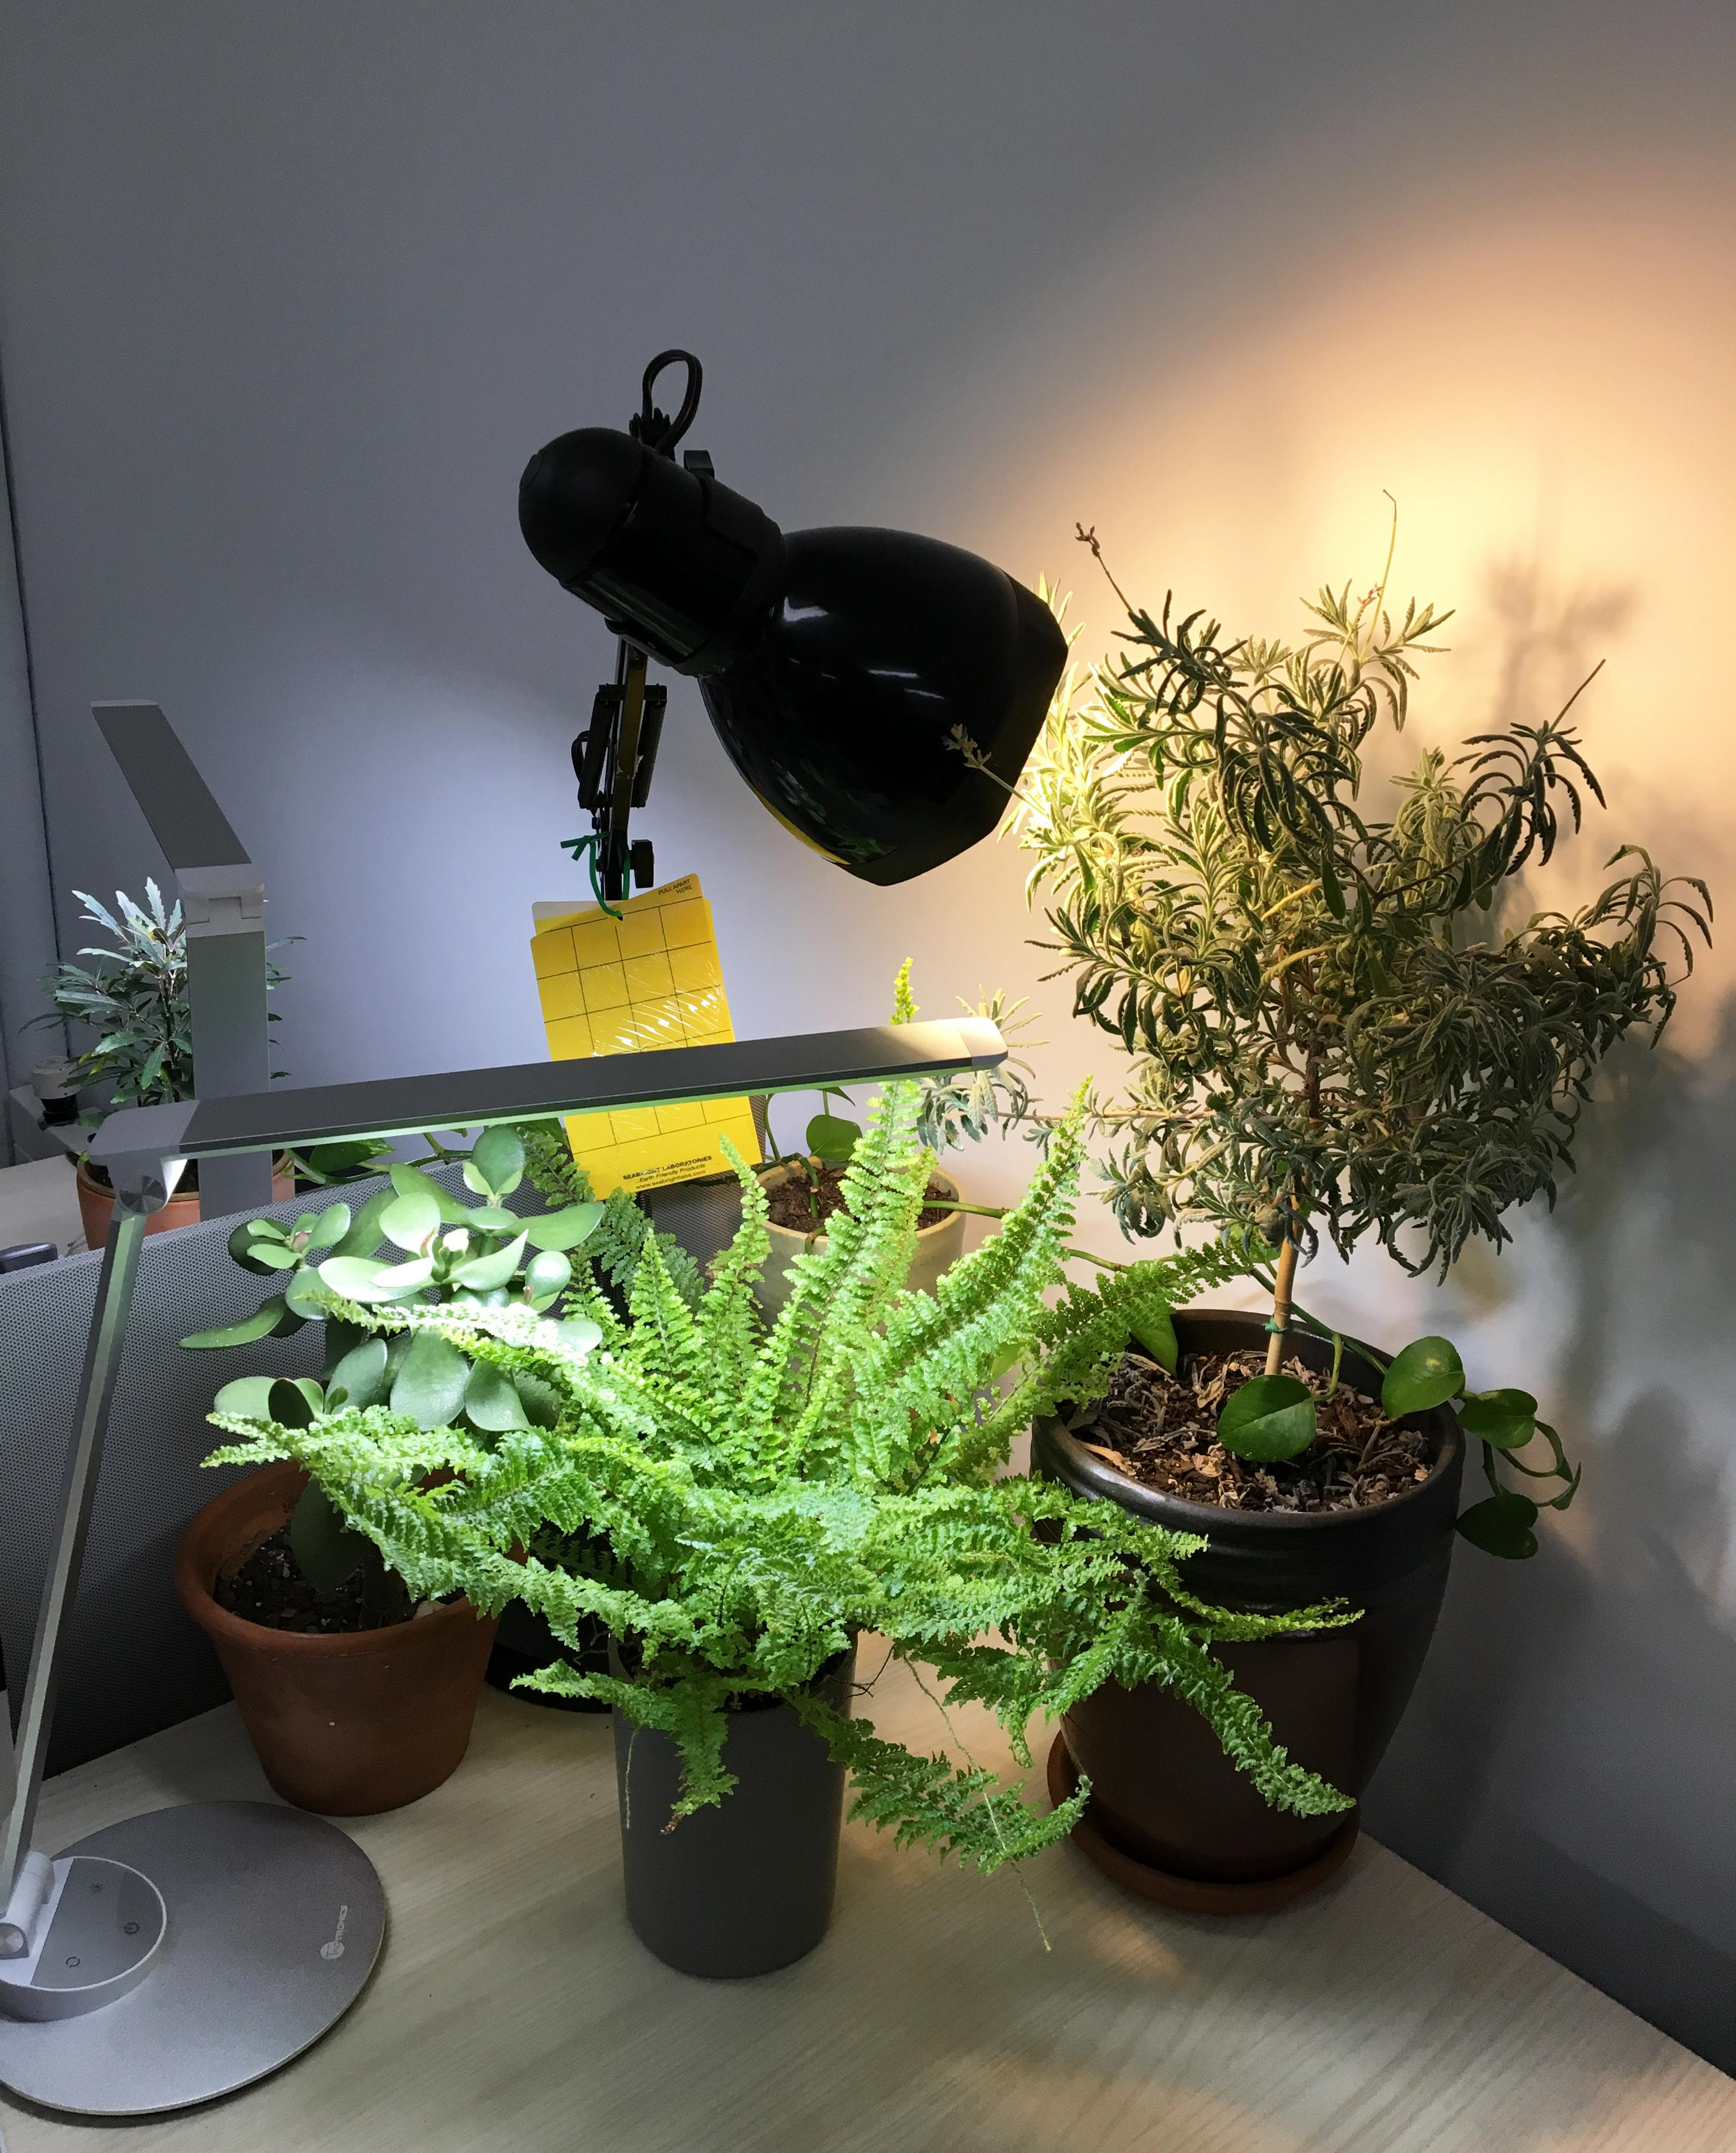 Vibrant green plants of various sizes sit on a table illuminated by desk lamps.